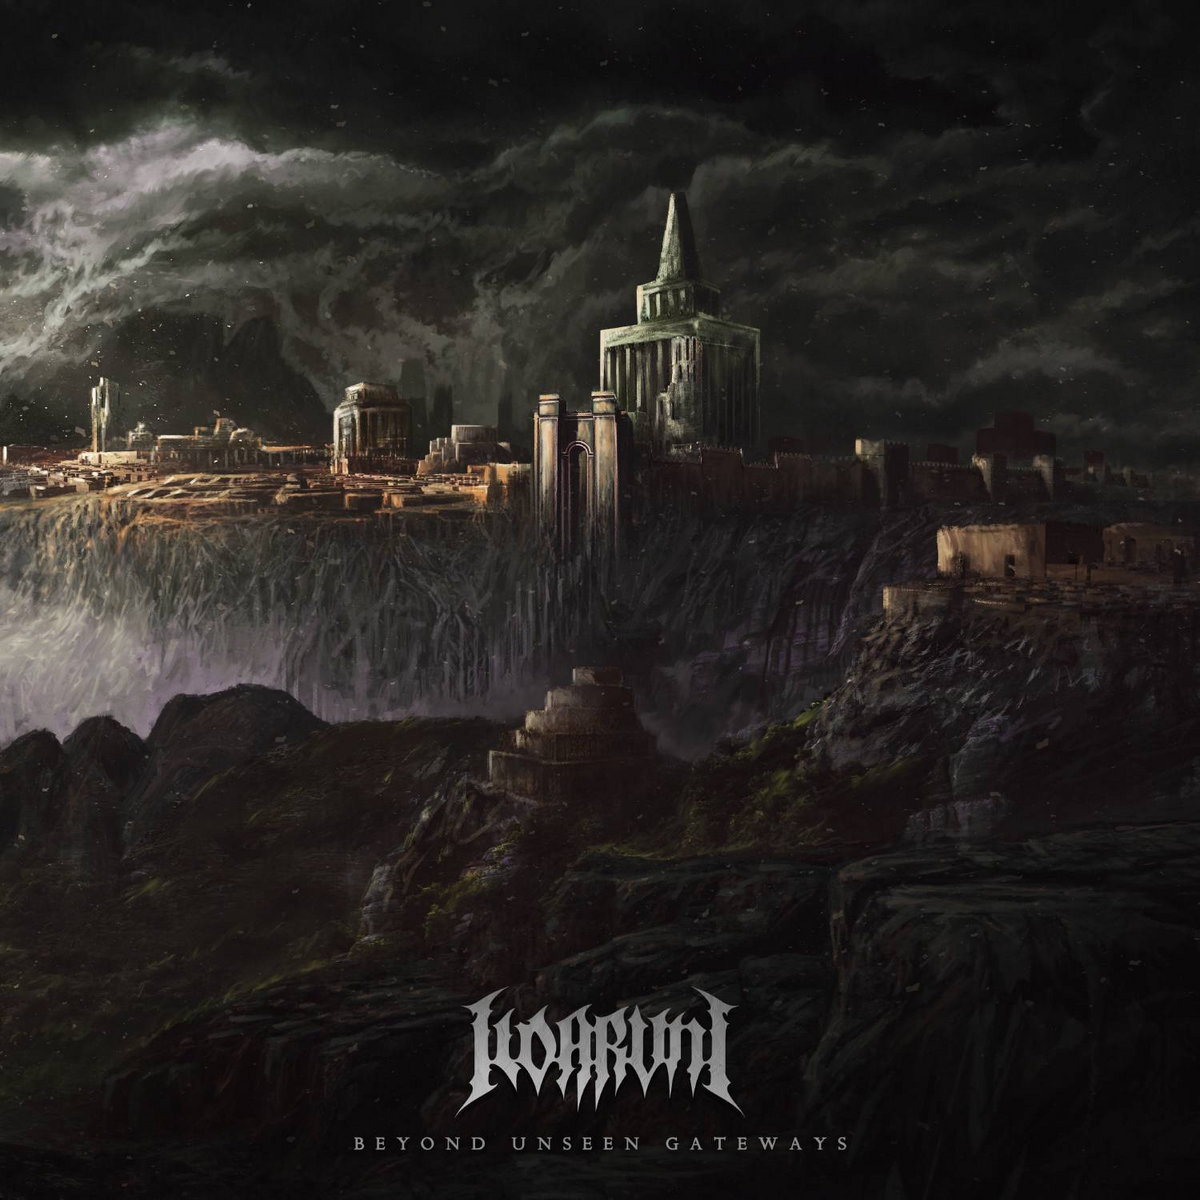 Beyond Unseen Gateways Ildaruni Album Cover Artwork